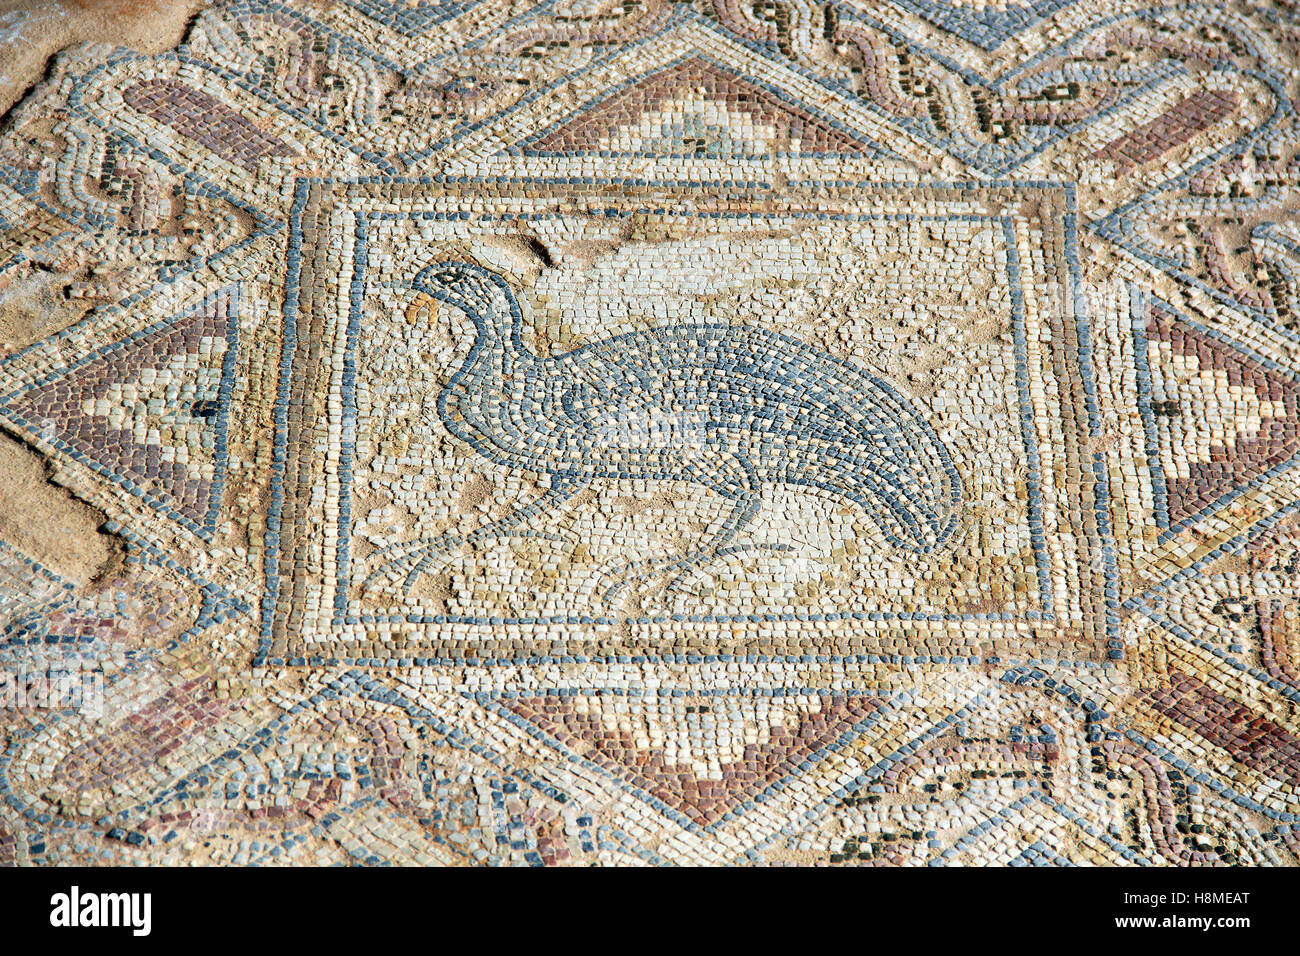 The fragment of ancient mosaic in Kourion, Cyprus Stock Photo